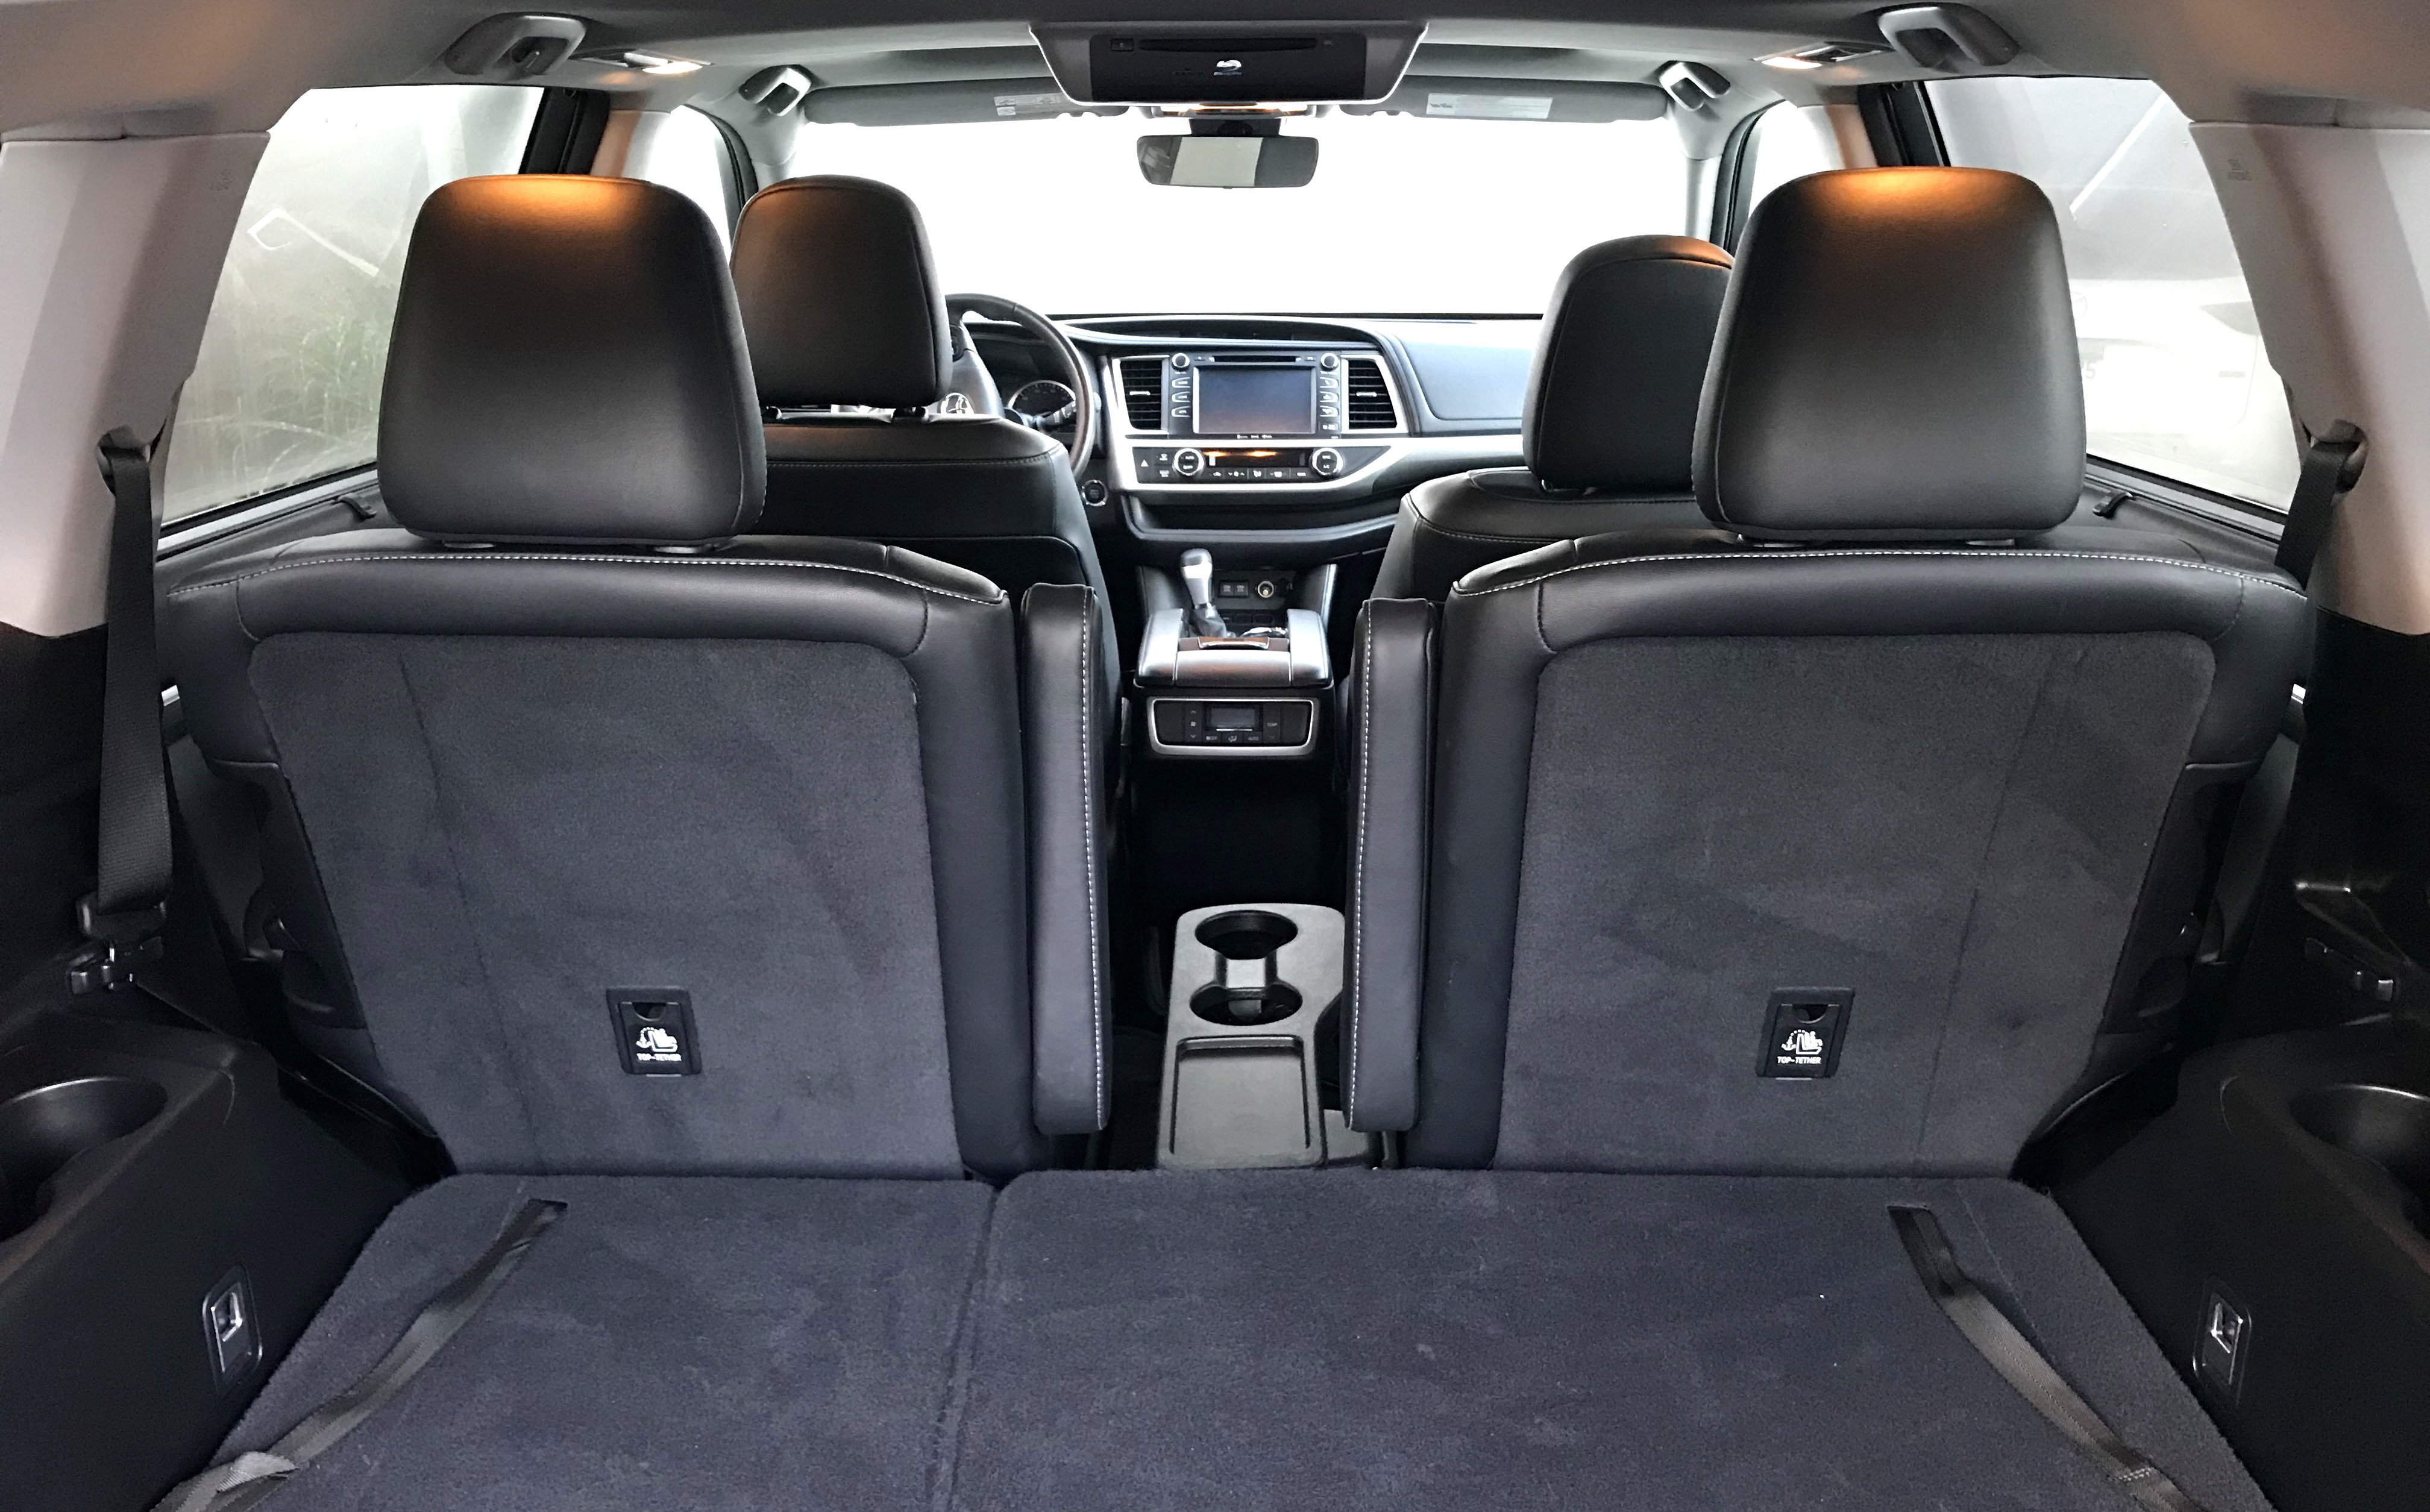 2017 toyota highlander se - view from rear